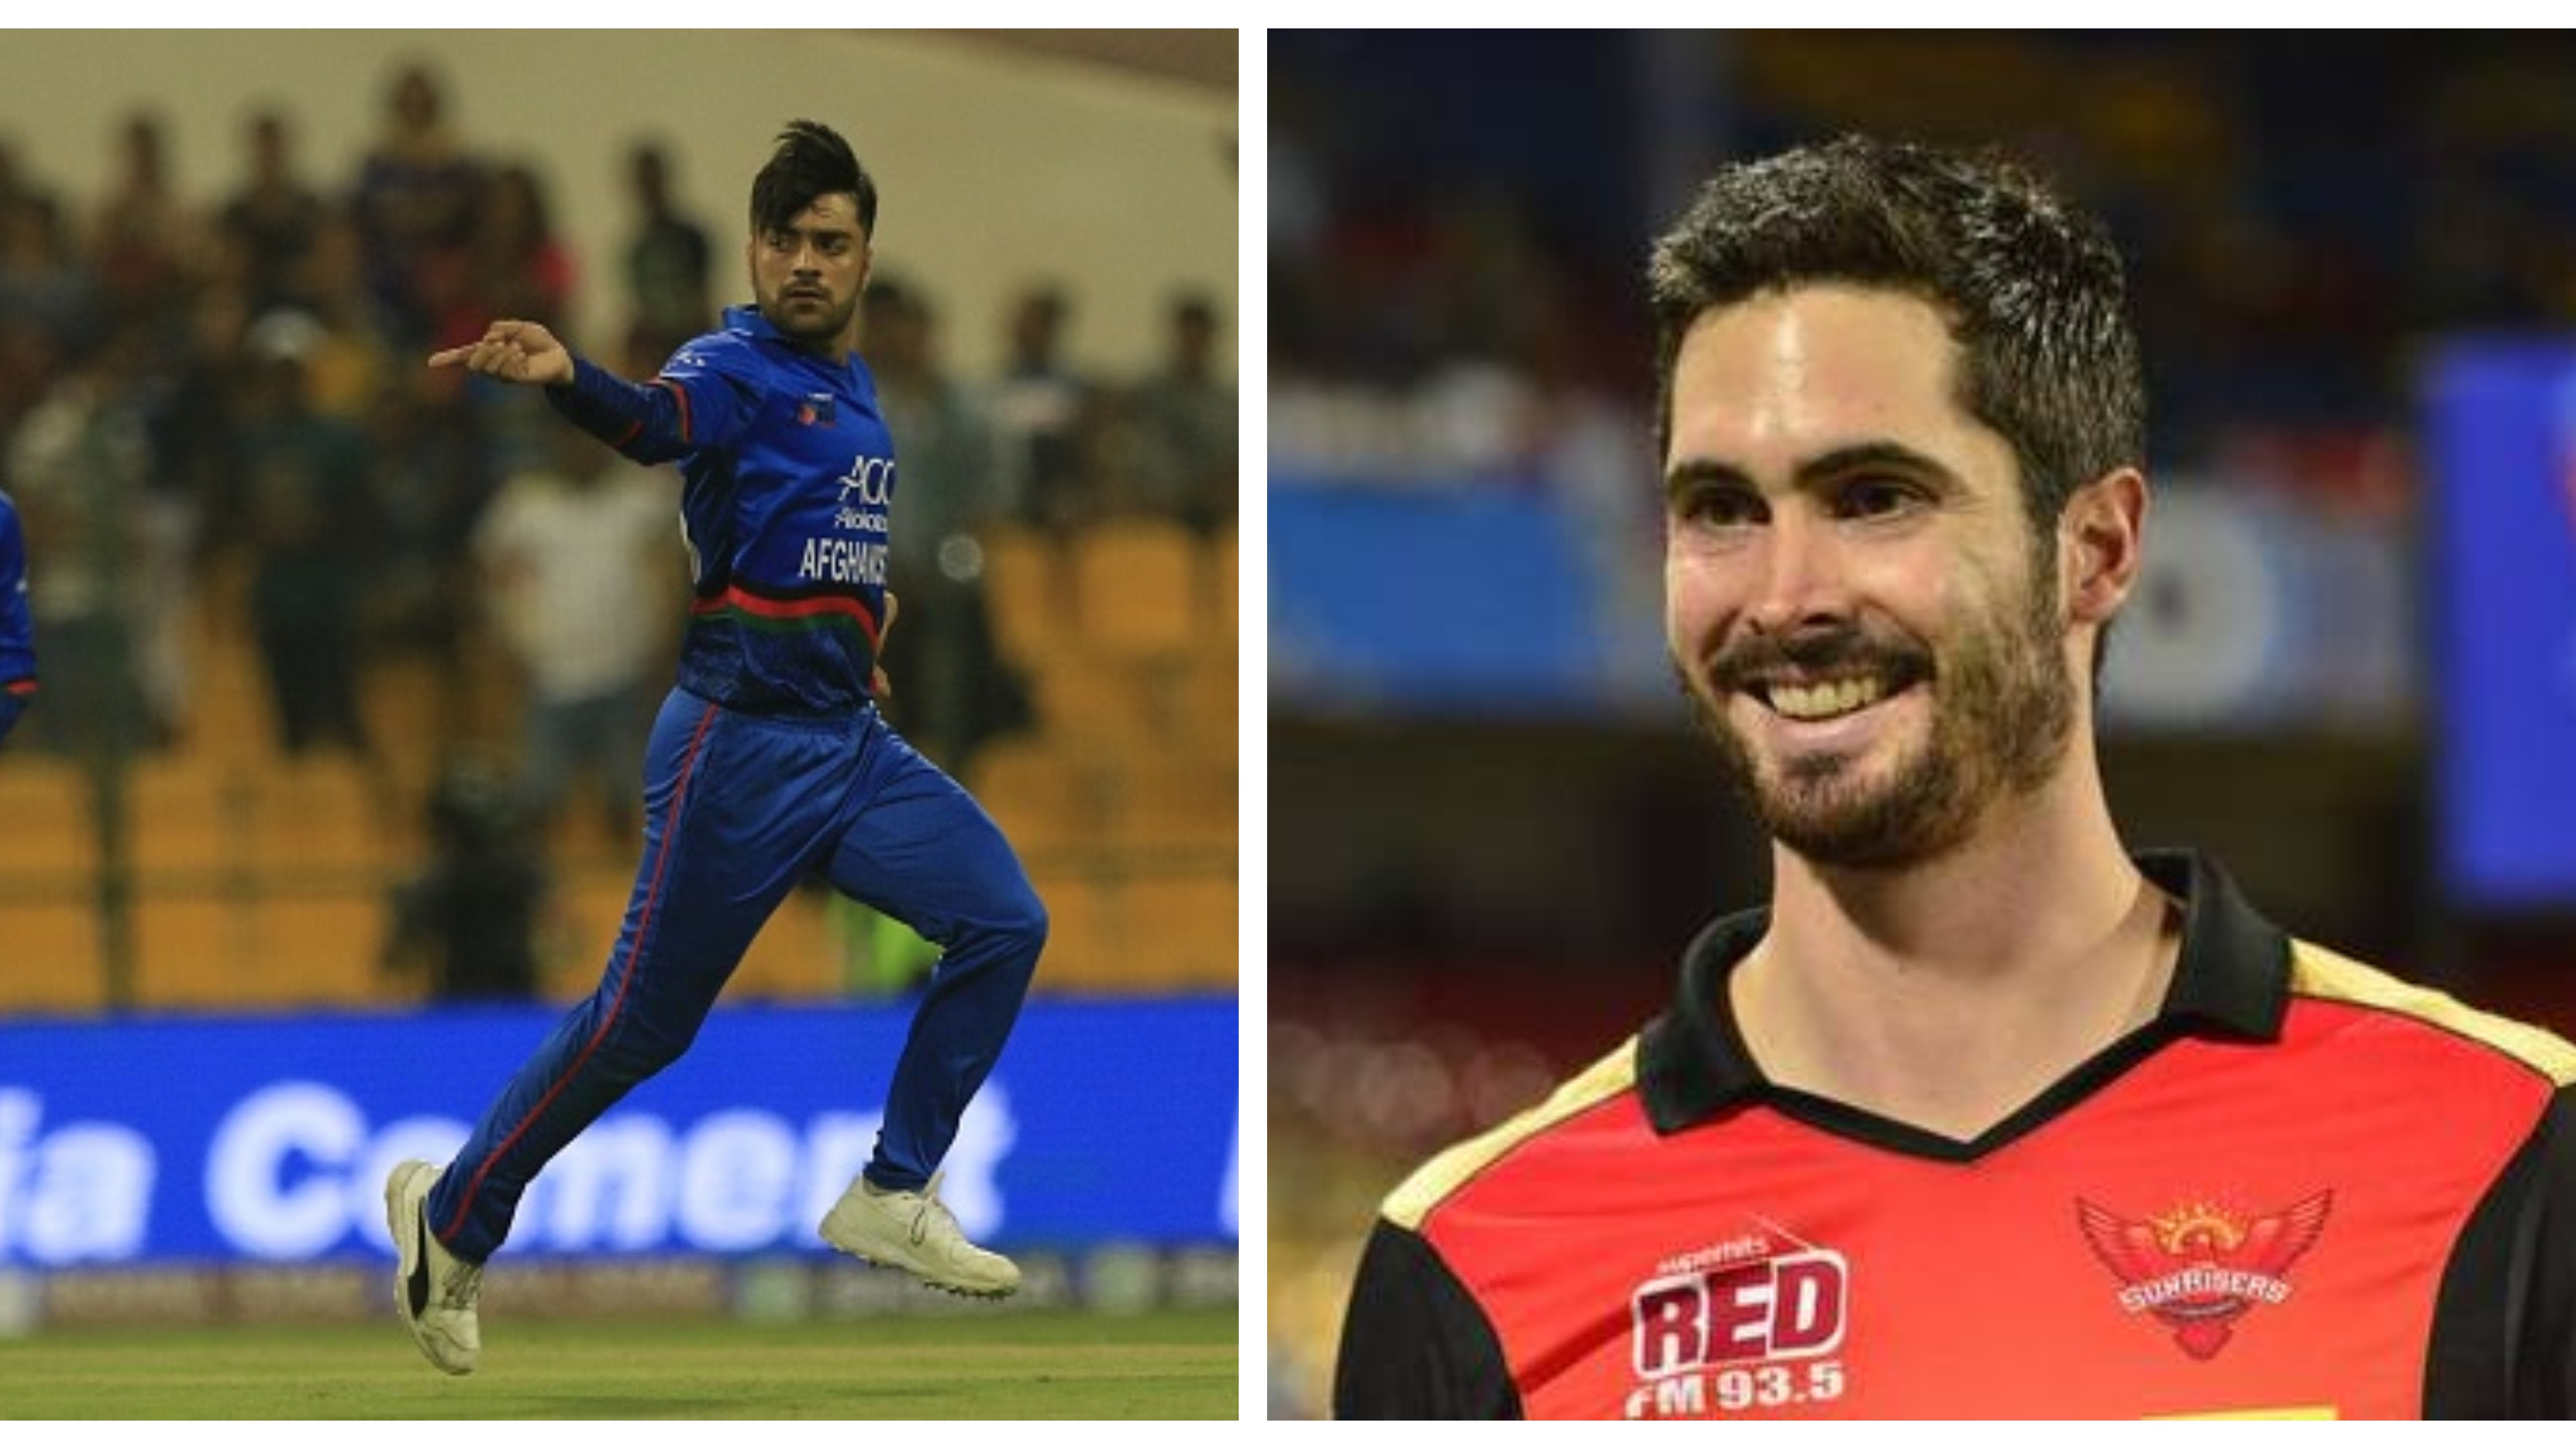 Rashid Khan is the best bowler in the world, reiterates Ben Cutting